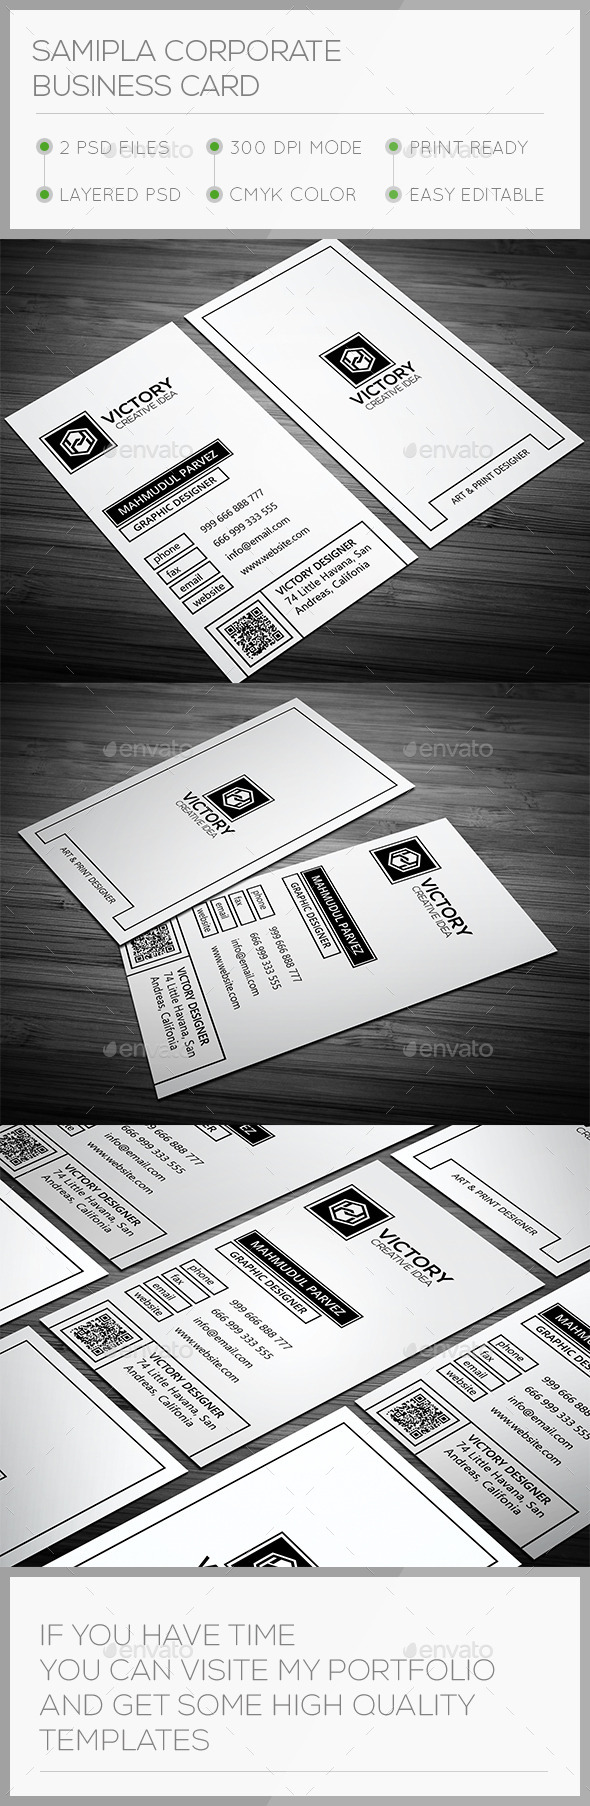 GraphicRiver Samipla Corporate Business Card 11243621